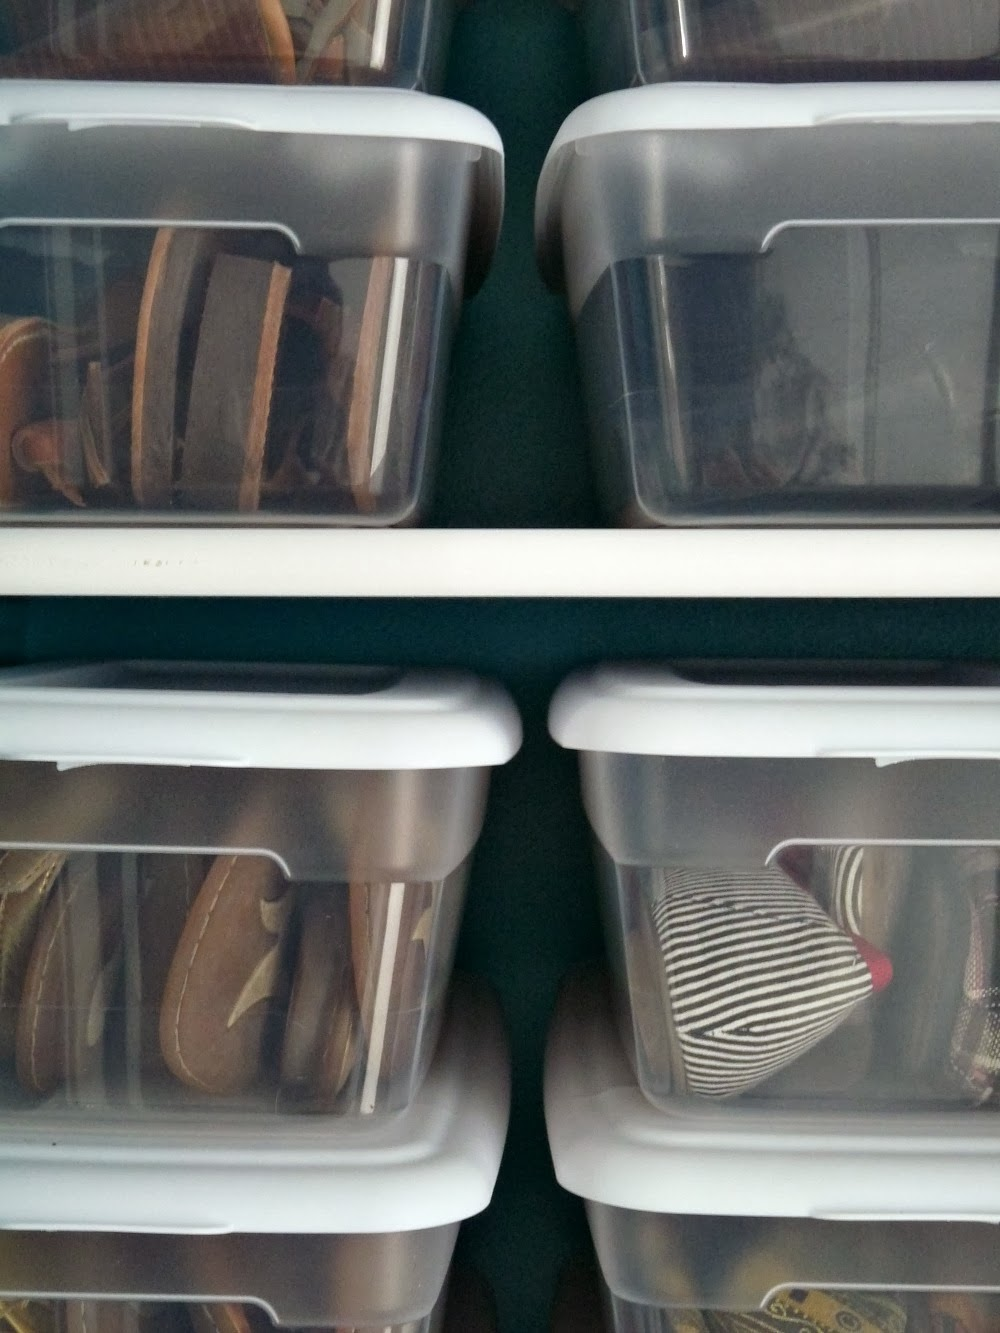 How to keep shoes organizes in any closet